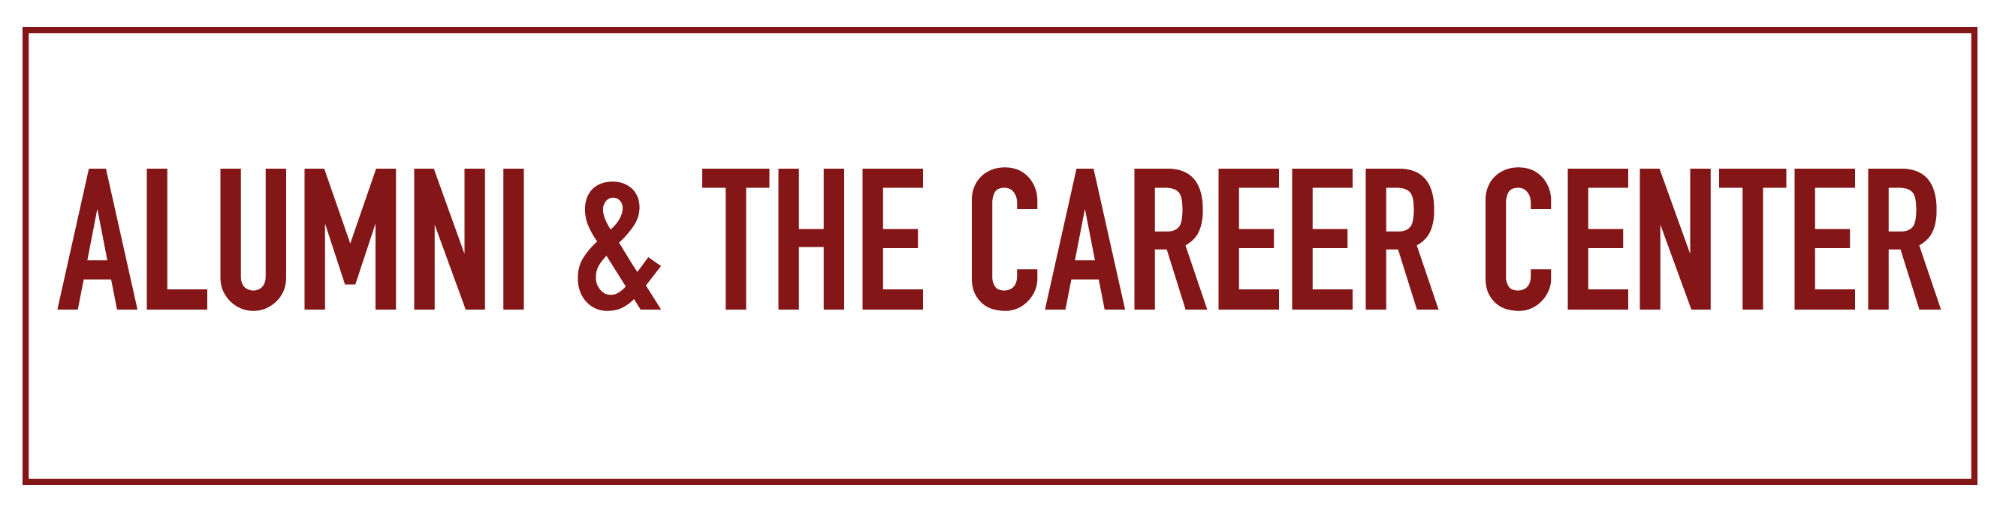 alumni-and-career-services-header